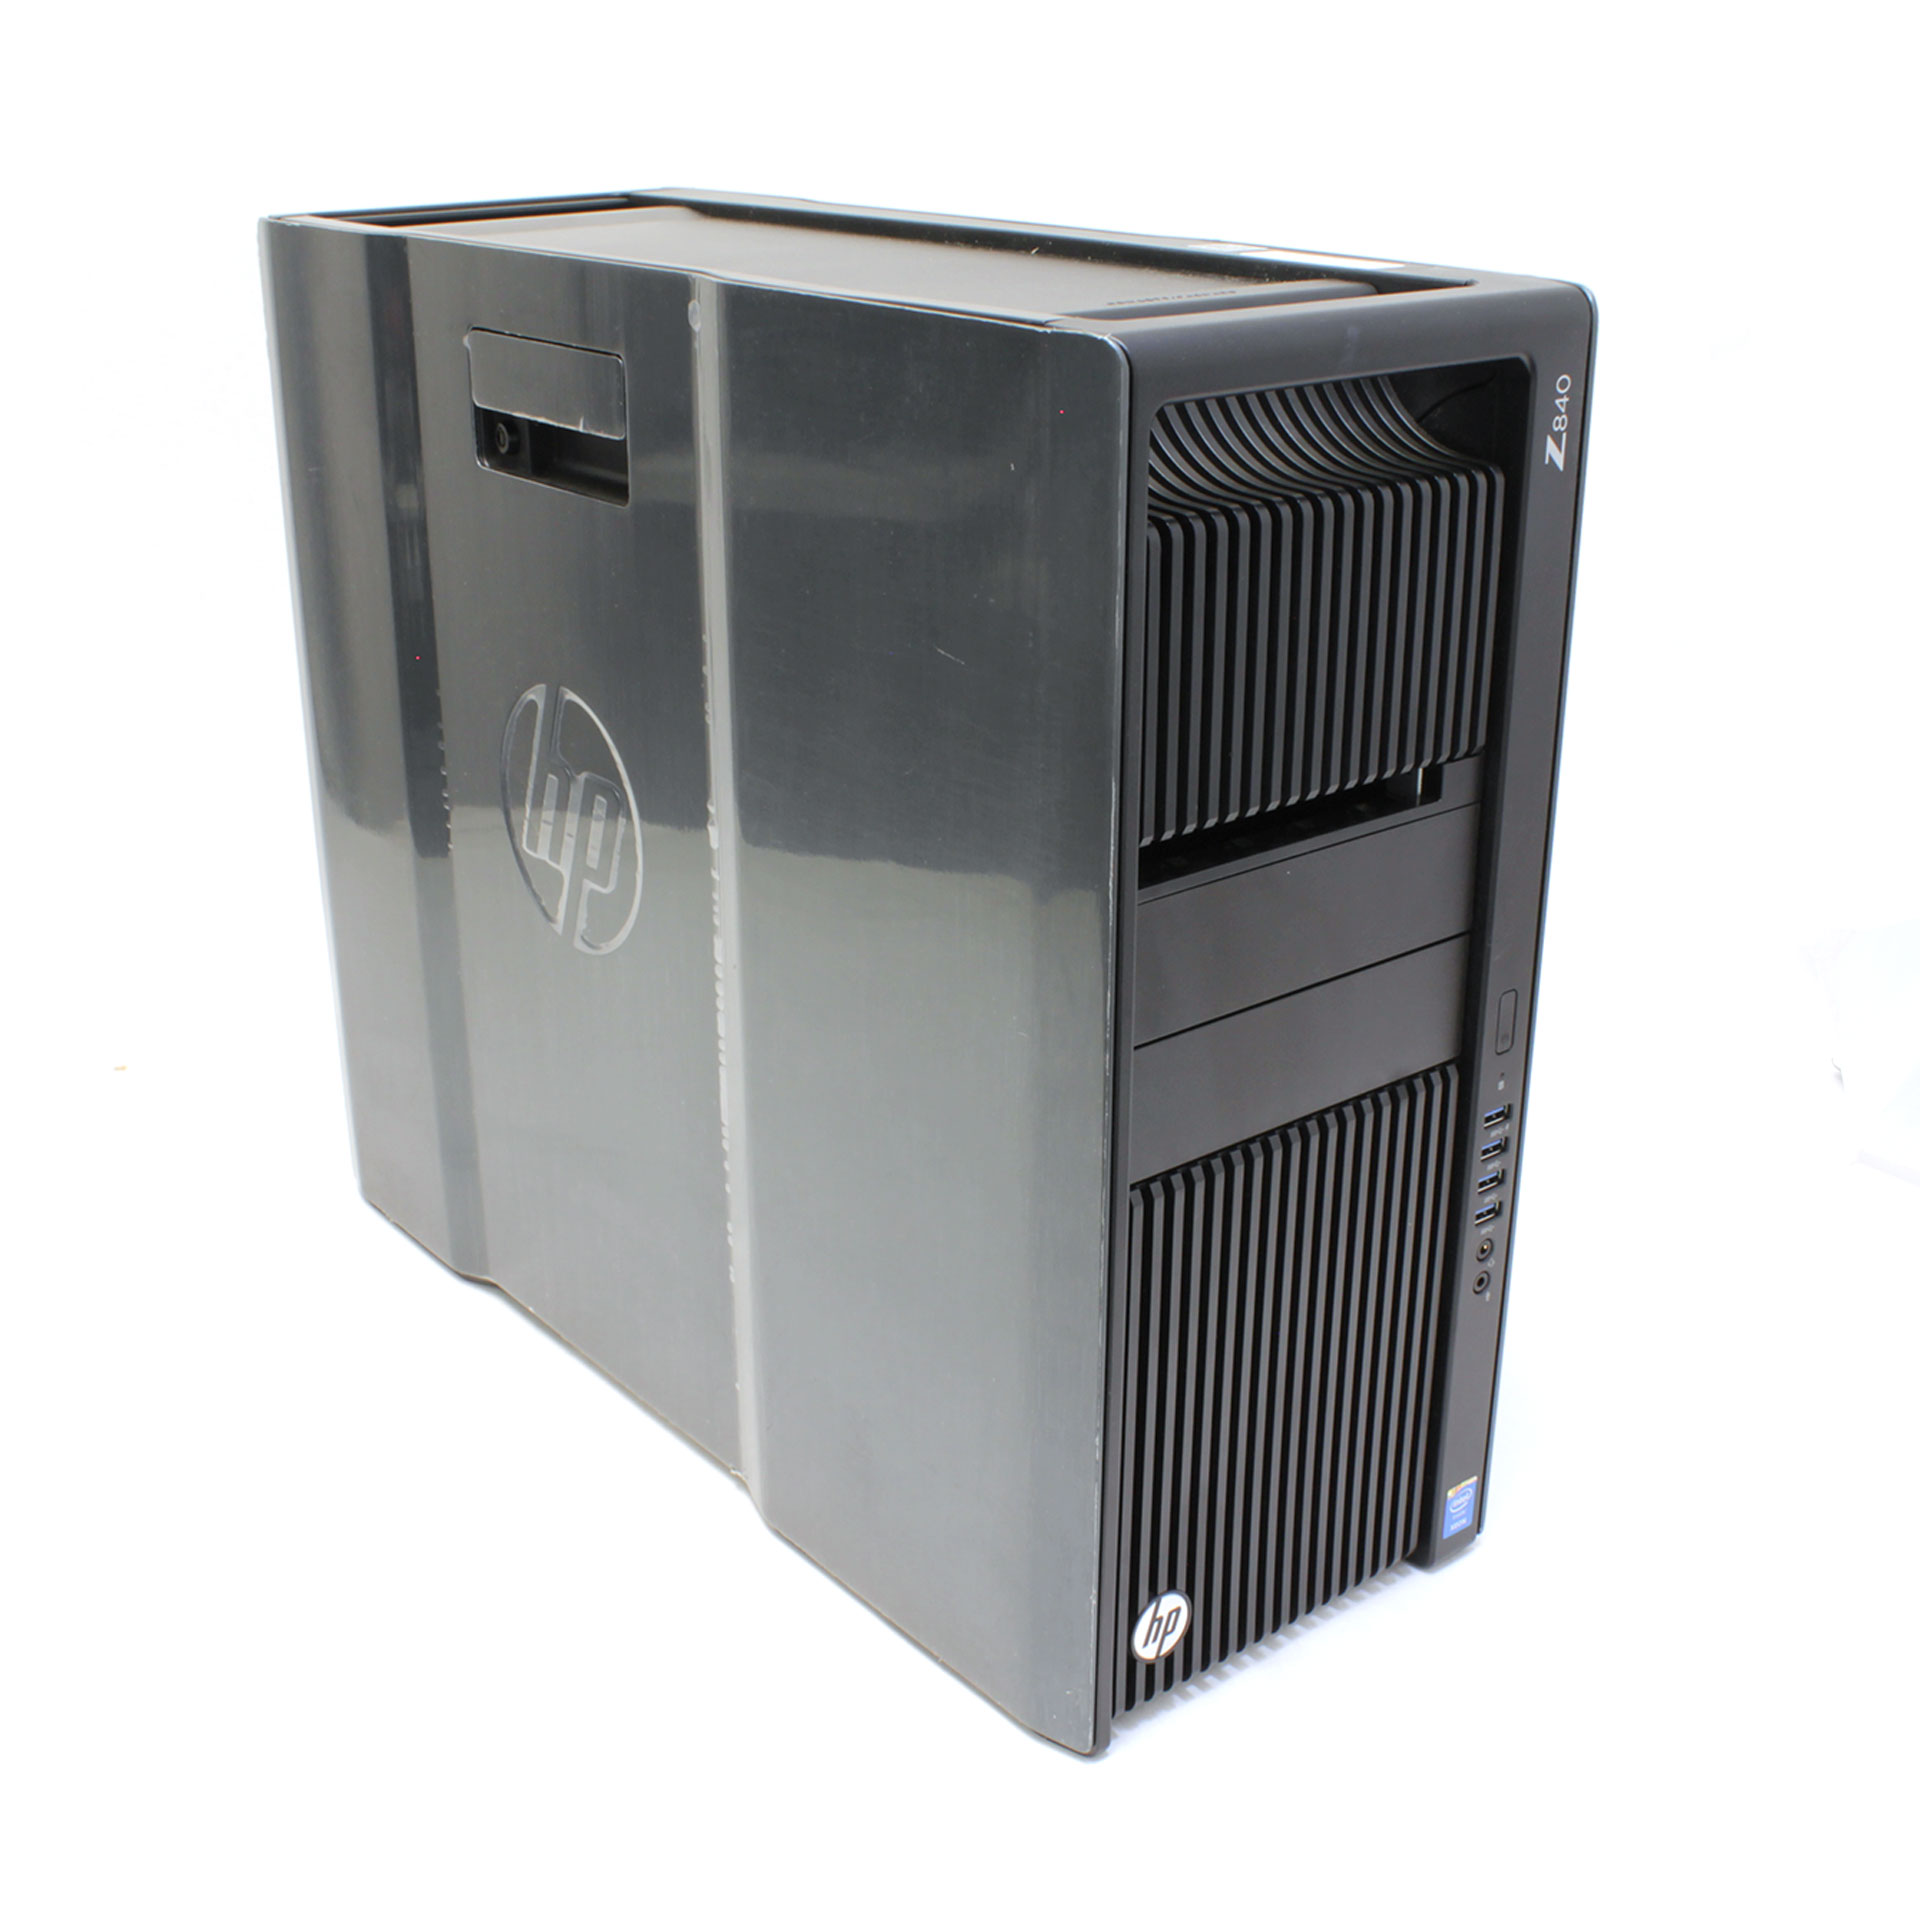 HP Workstation Z840 Xeon E5-2620V3 64 GB 256 GB SSD Quadro M4000